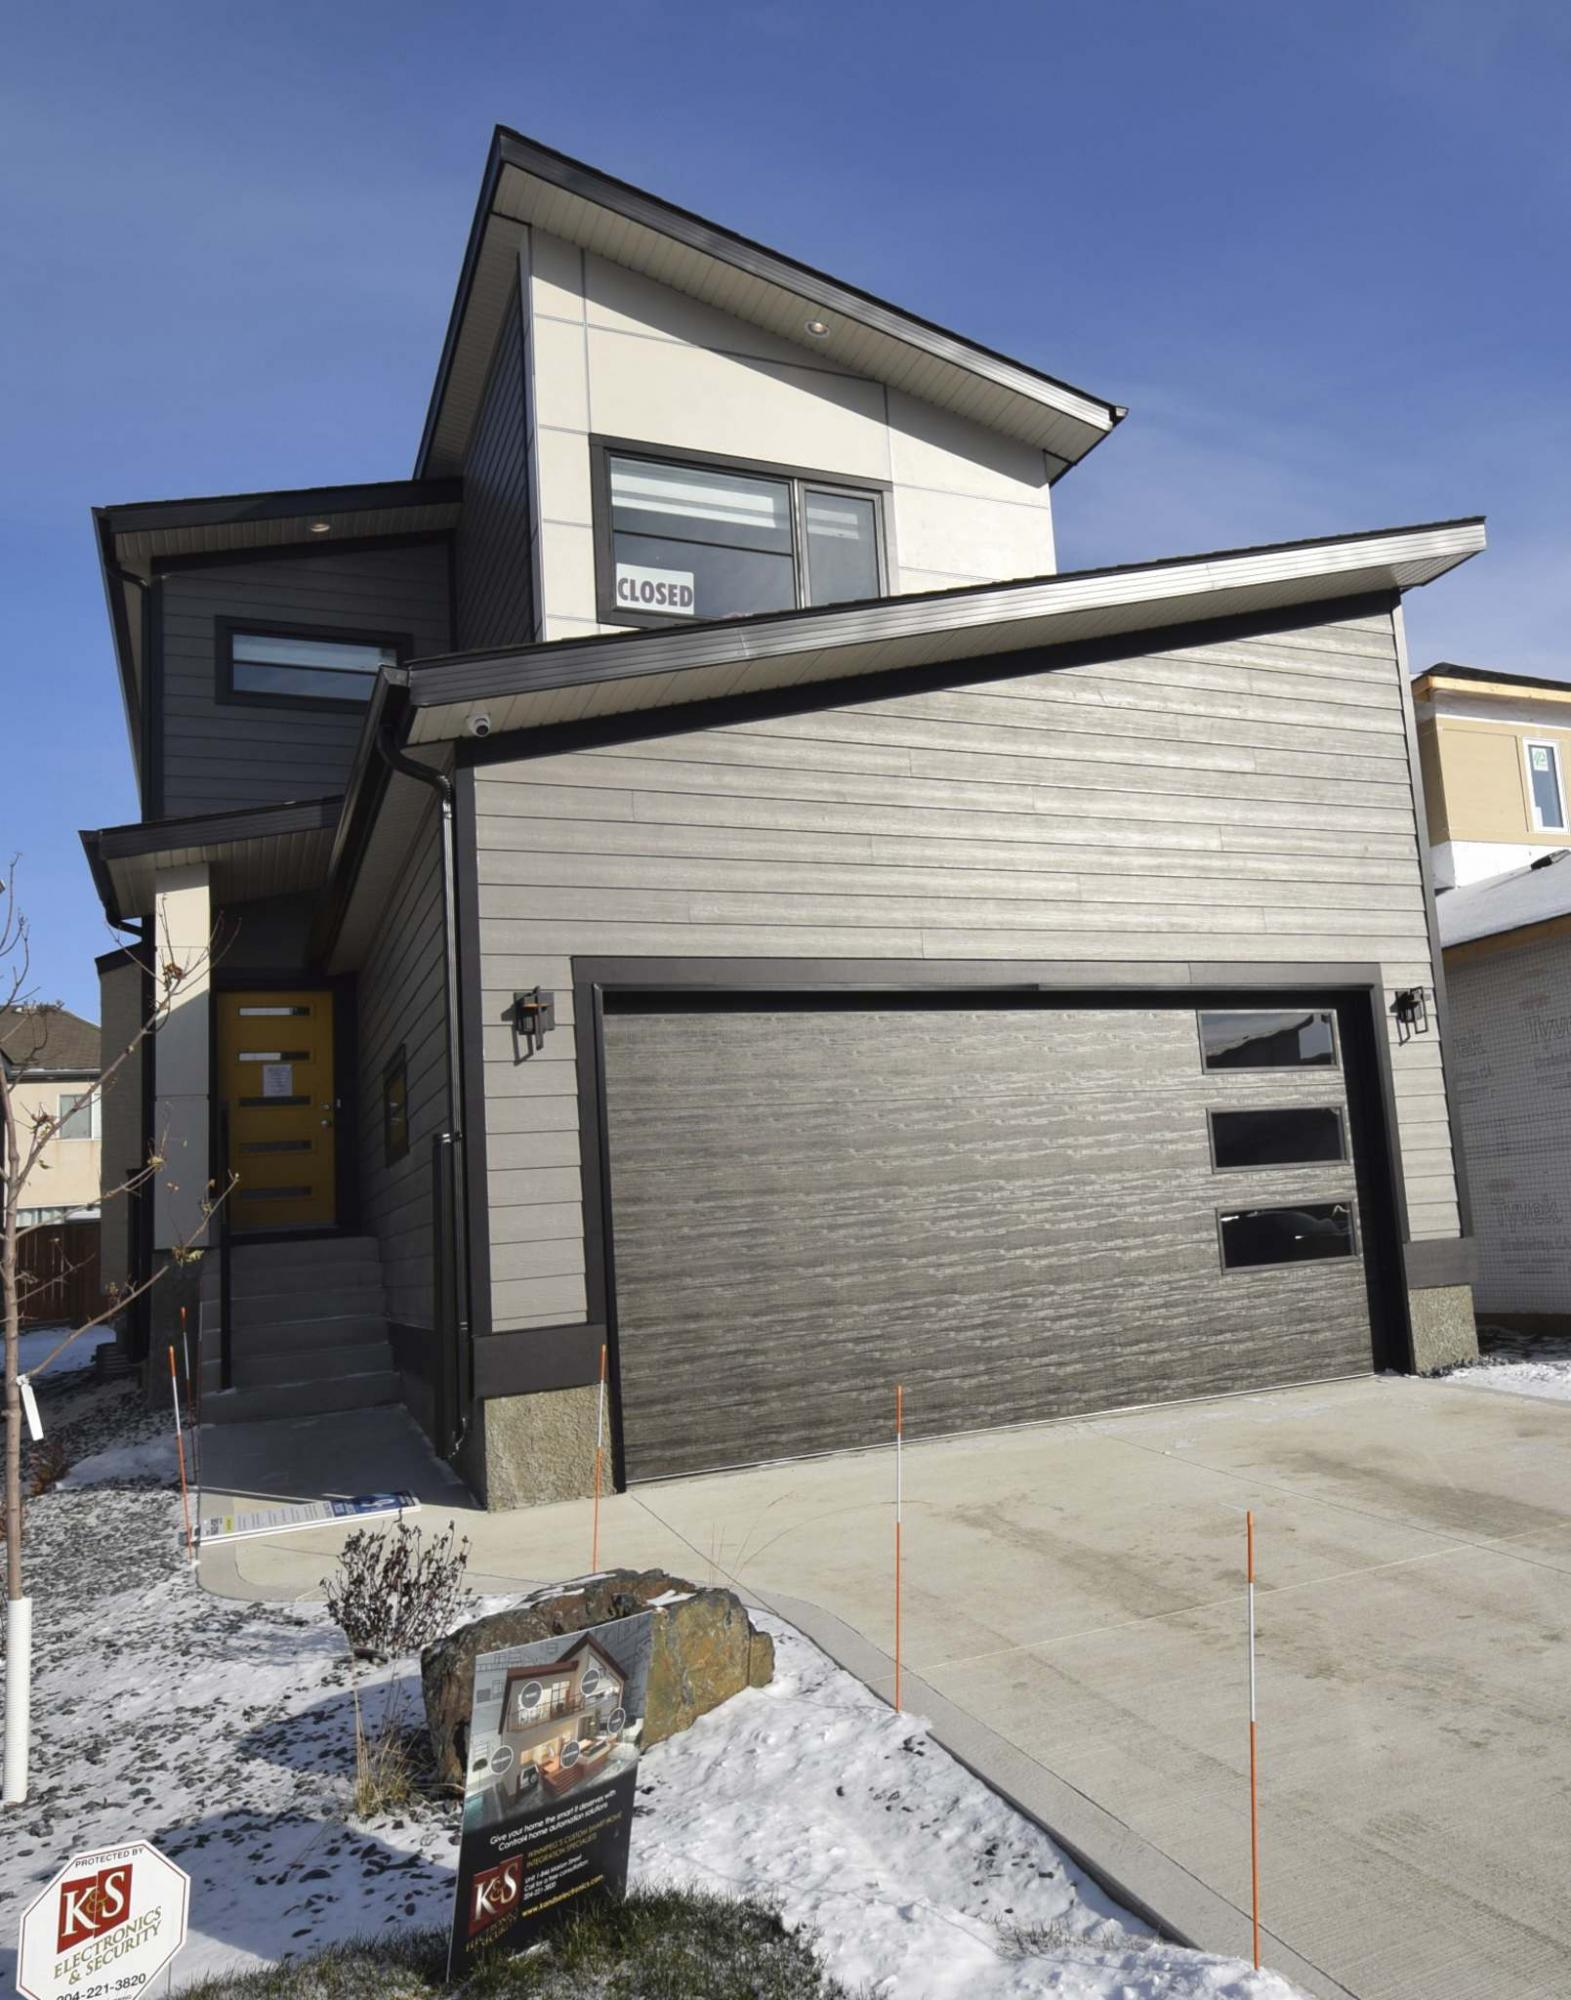 <p>Photos by Todd Lewys / Winnipeg Free Press</p><p>This new two-storey design by Hilton Homes features a striking exterior and an efficient floor plan. </p>